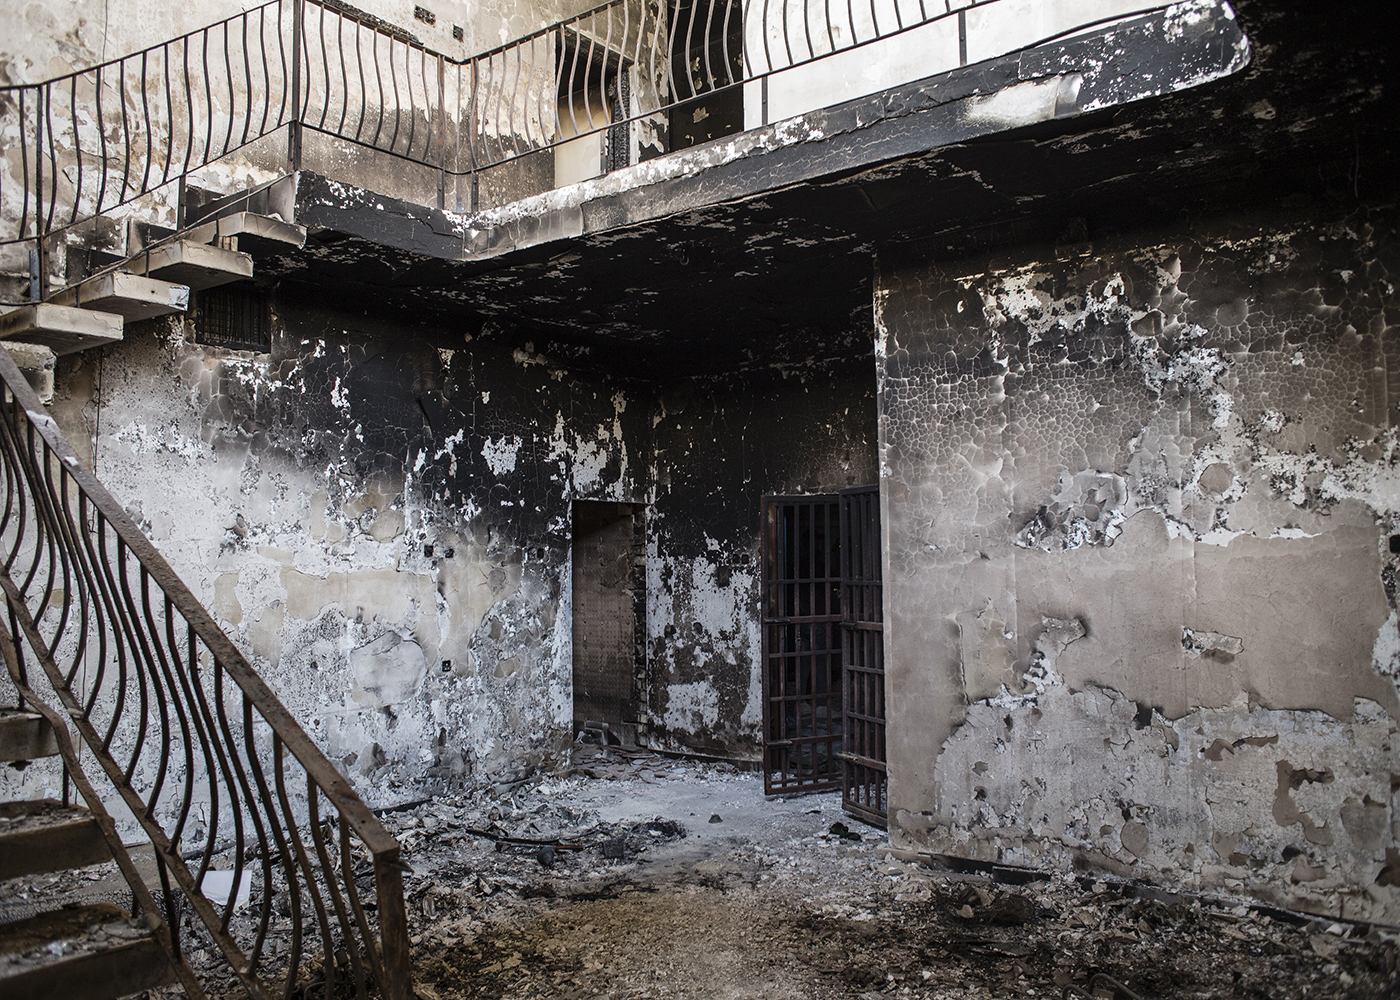 26/06/2016 -- Fallujah, Iraq -- A view of the building where they found an ISIS prison in the Muallimin neighborhood of Fallujah.It's one of the two prison found by police forces spread across three houses. The downstairs rooms used as group cells and the upstairs for solitary confinement.